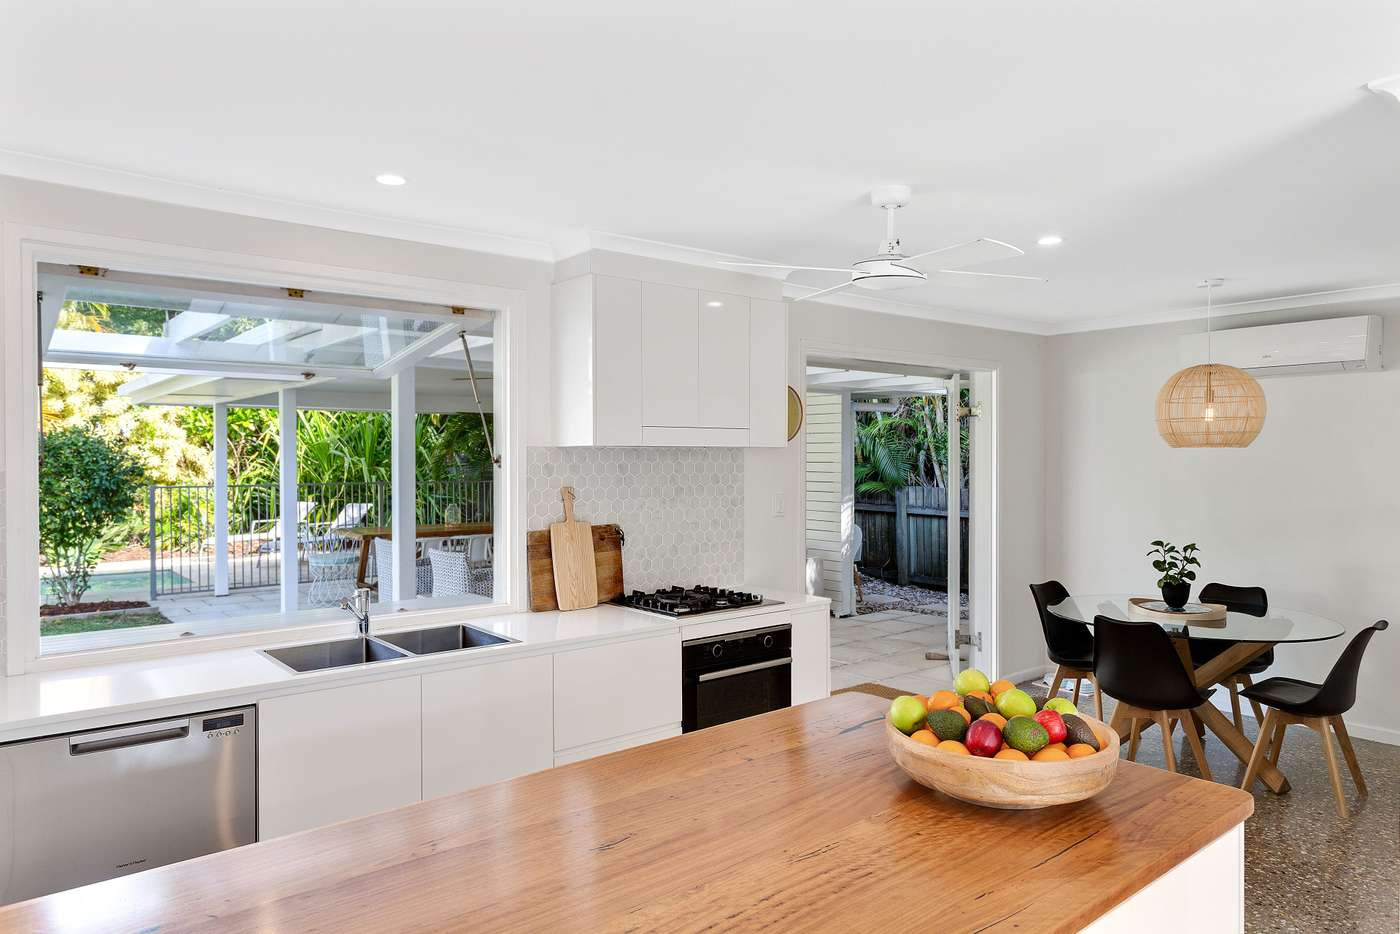 Fifth view of Homely house listing, 5 Koel Street, Noosaville QLD 4566